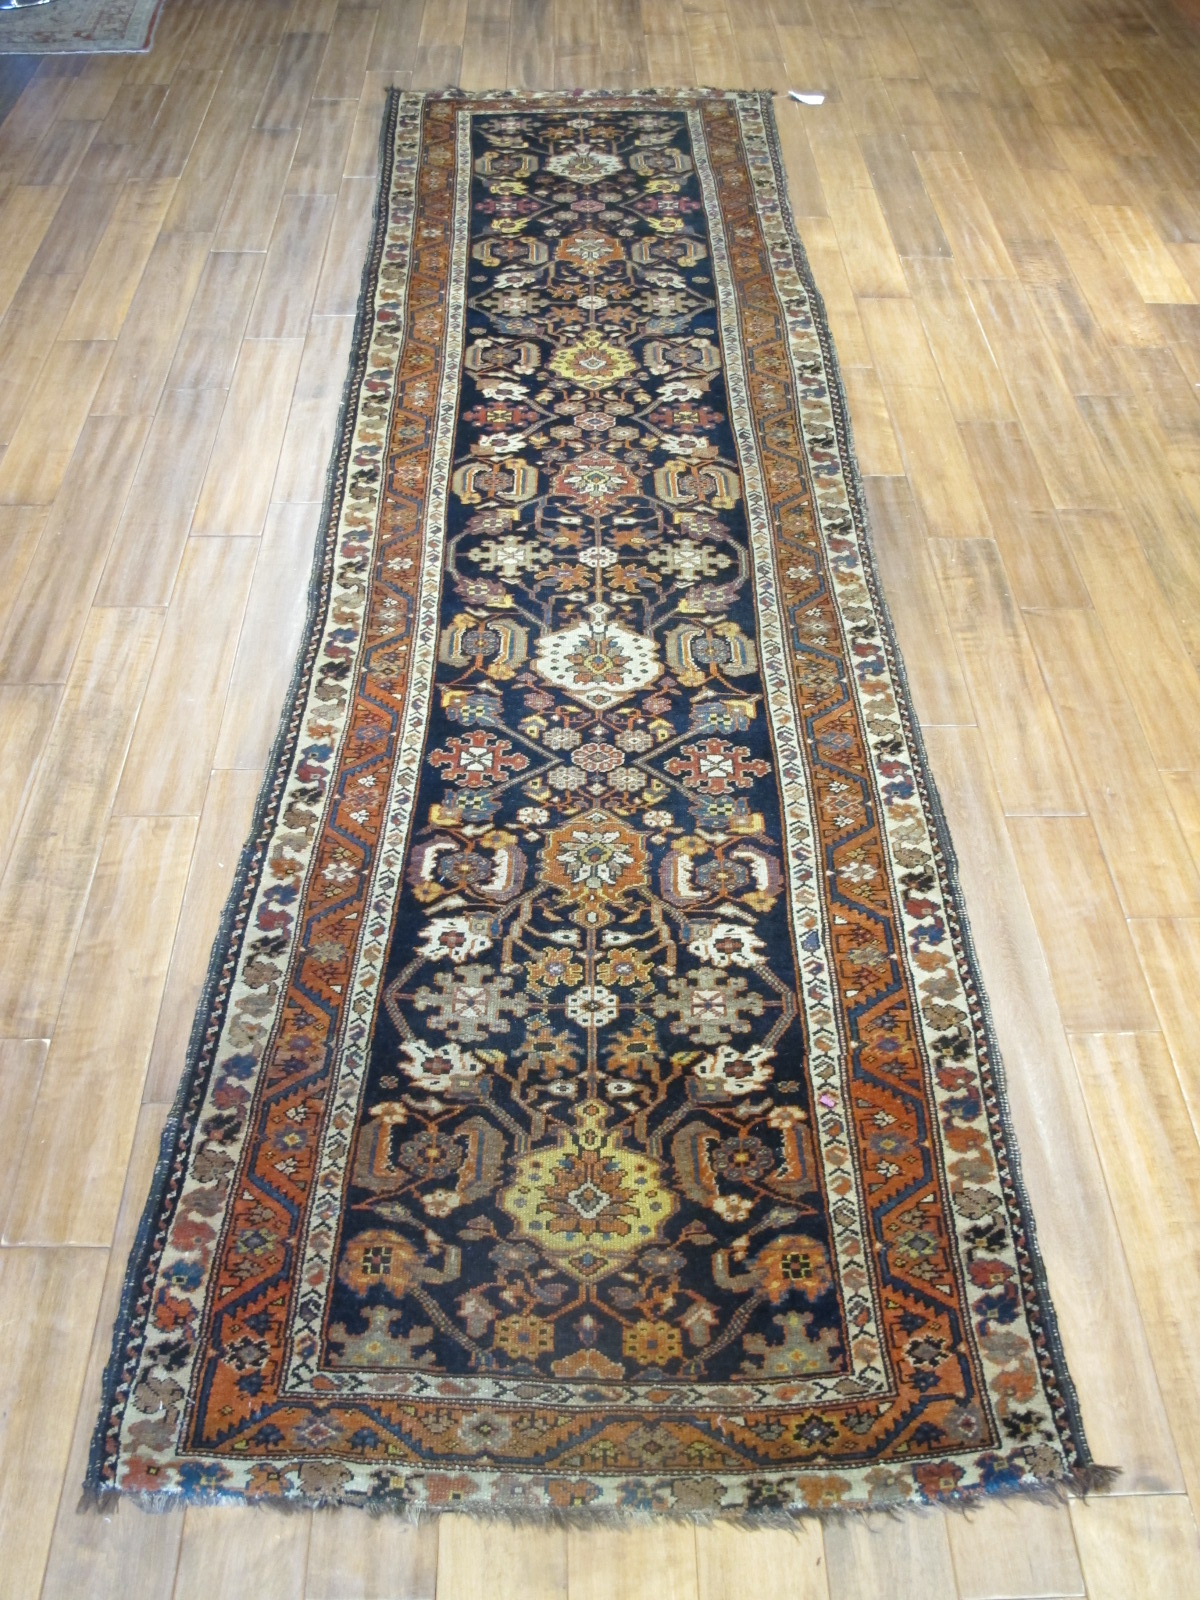 23681-antique-persian-kurd-runner-34x124-1